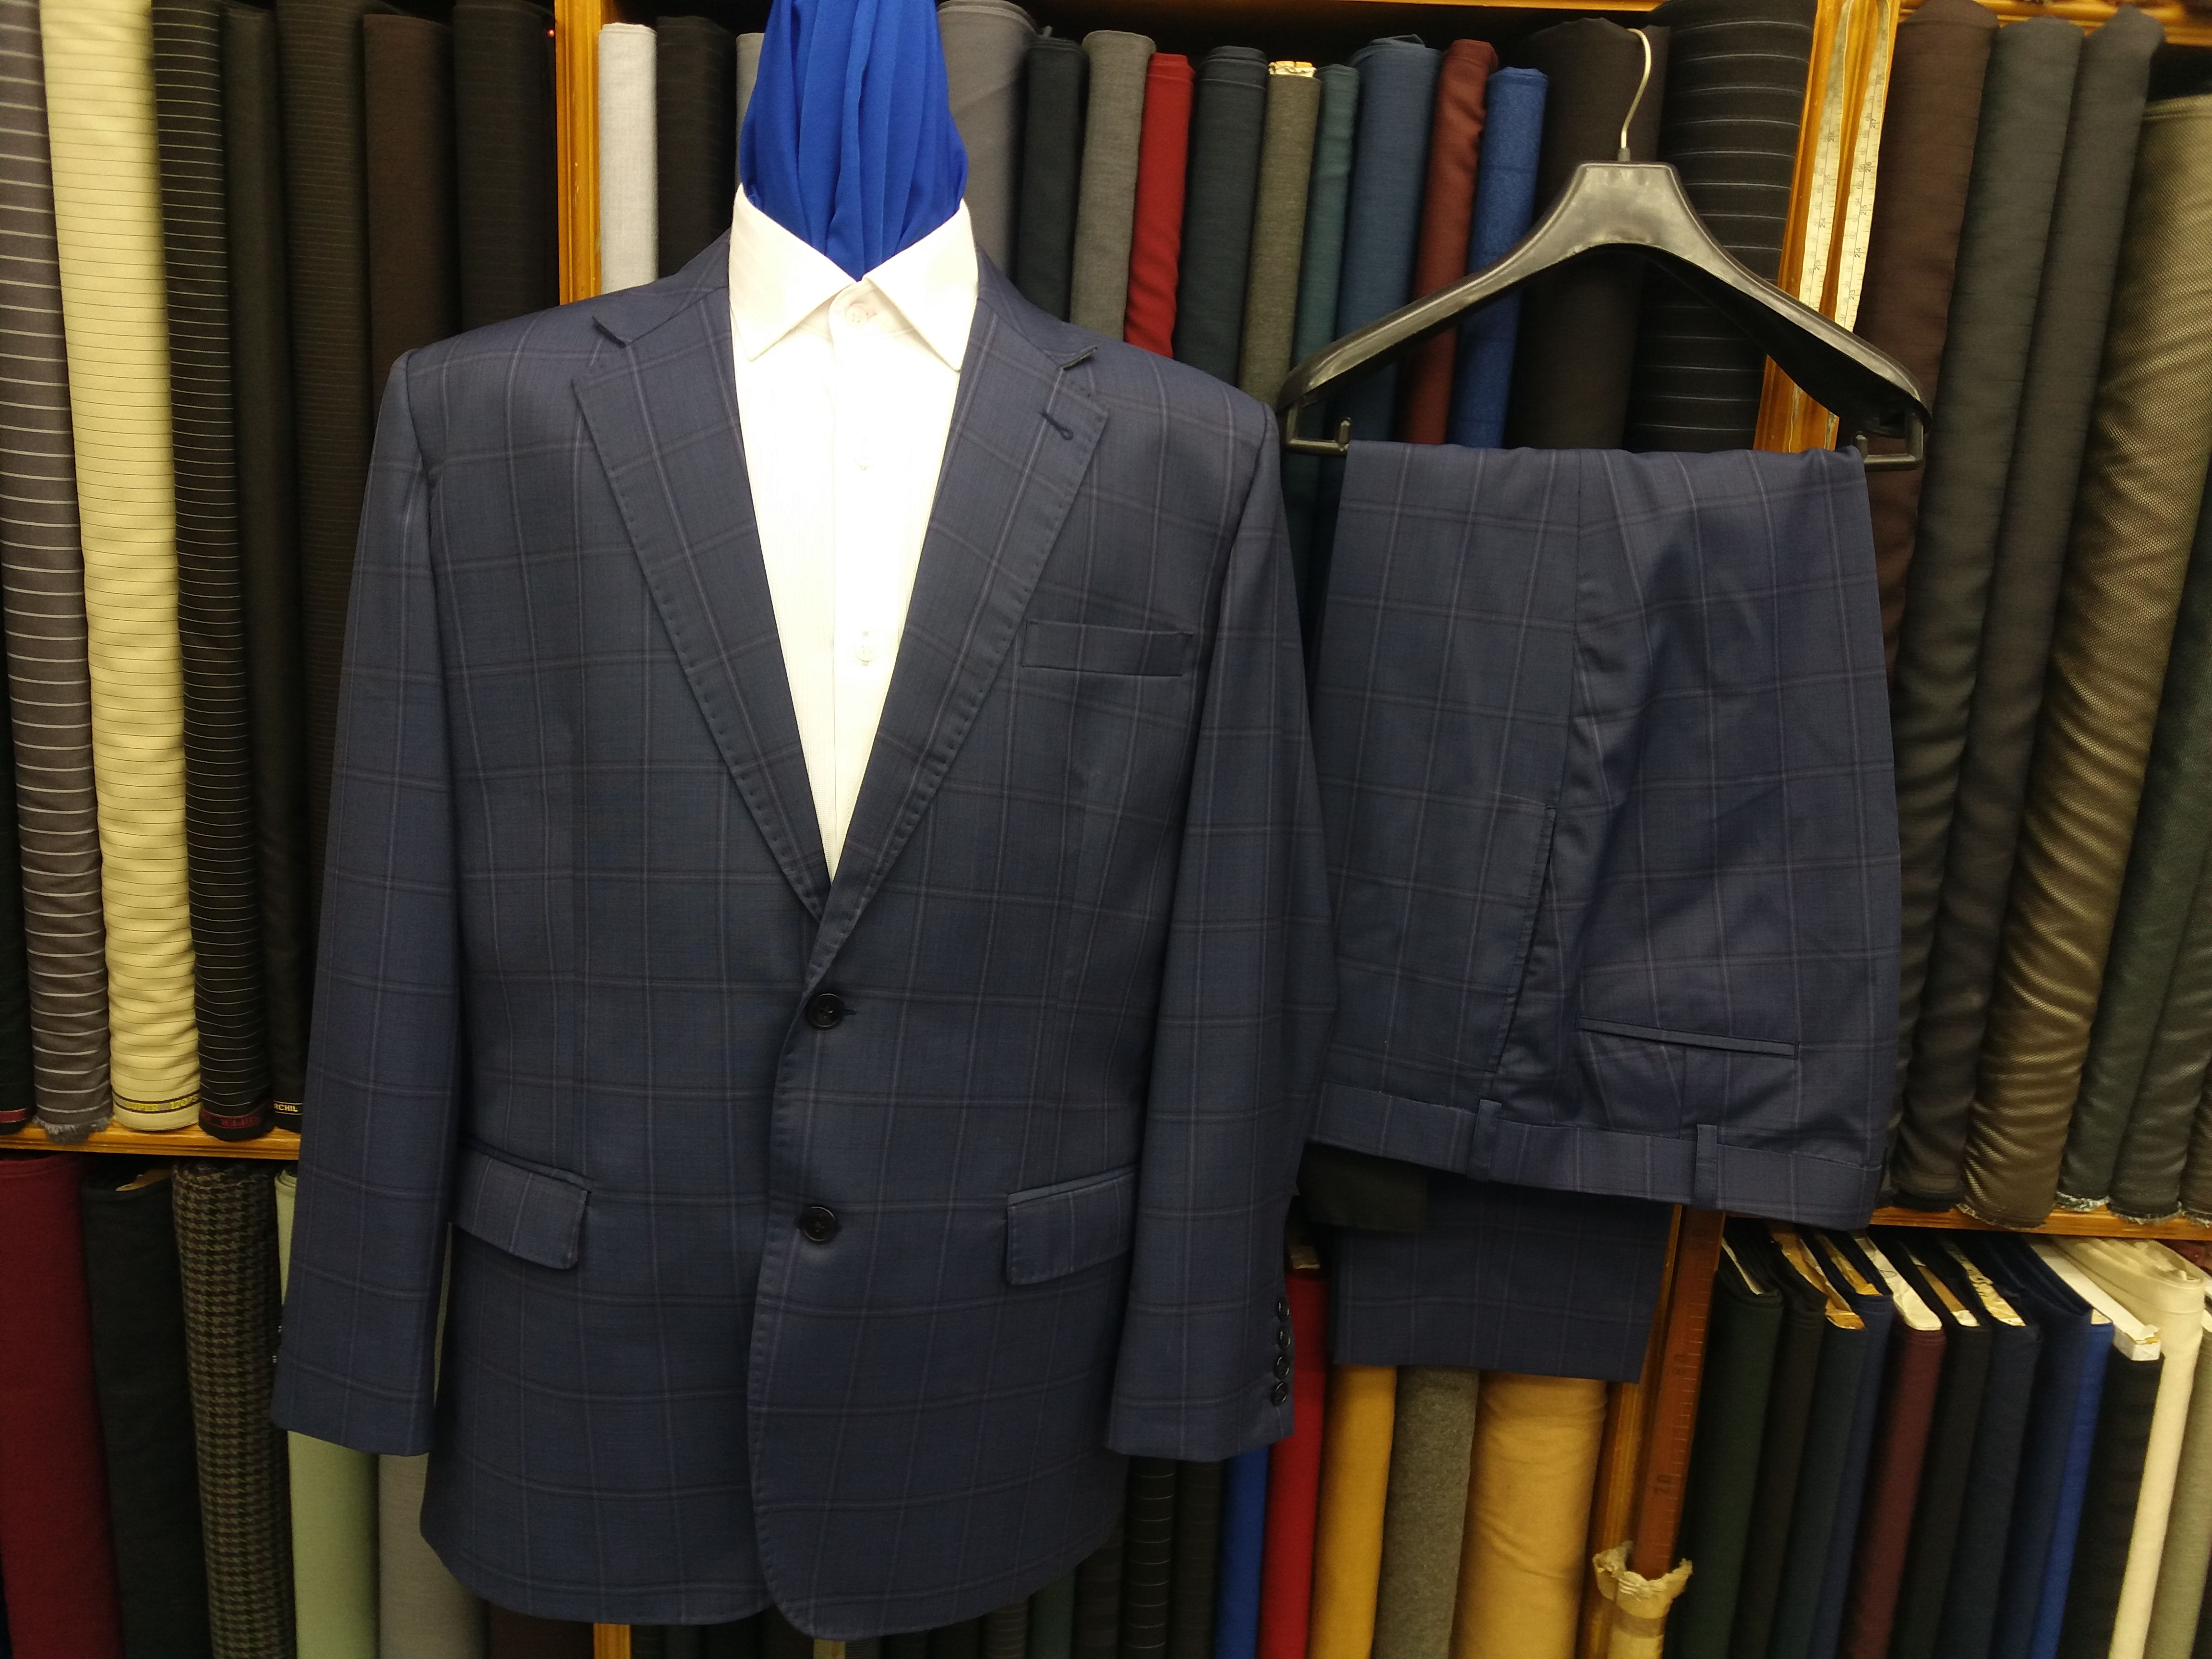 Men Gray Suit Suit Custom Made To Measure Business Work Formal Bespoke Tailored Custom Made Suits Suit Fashion Made To Measure Suits